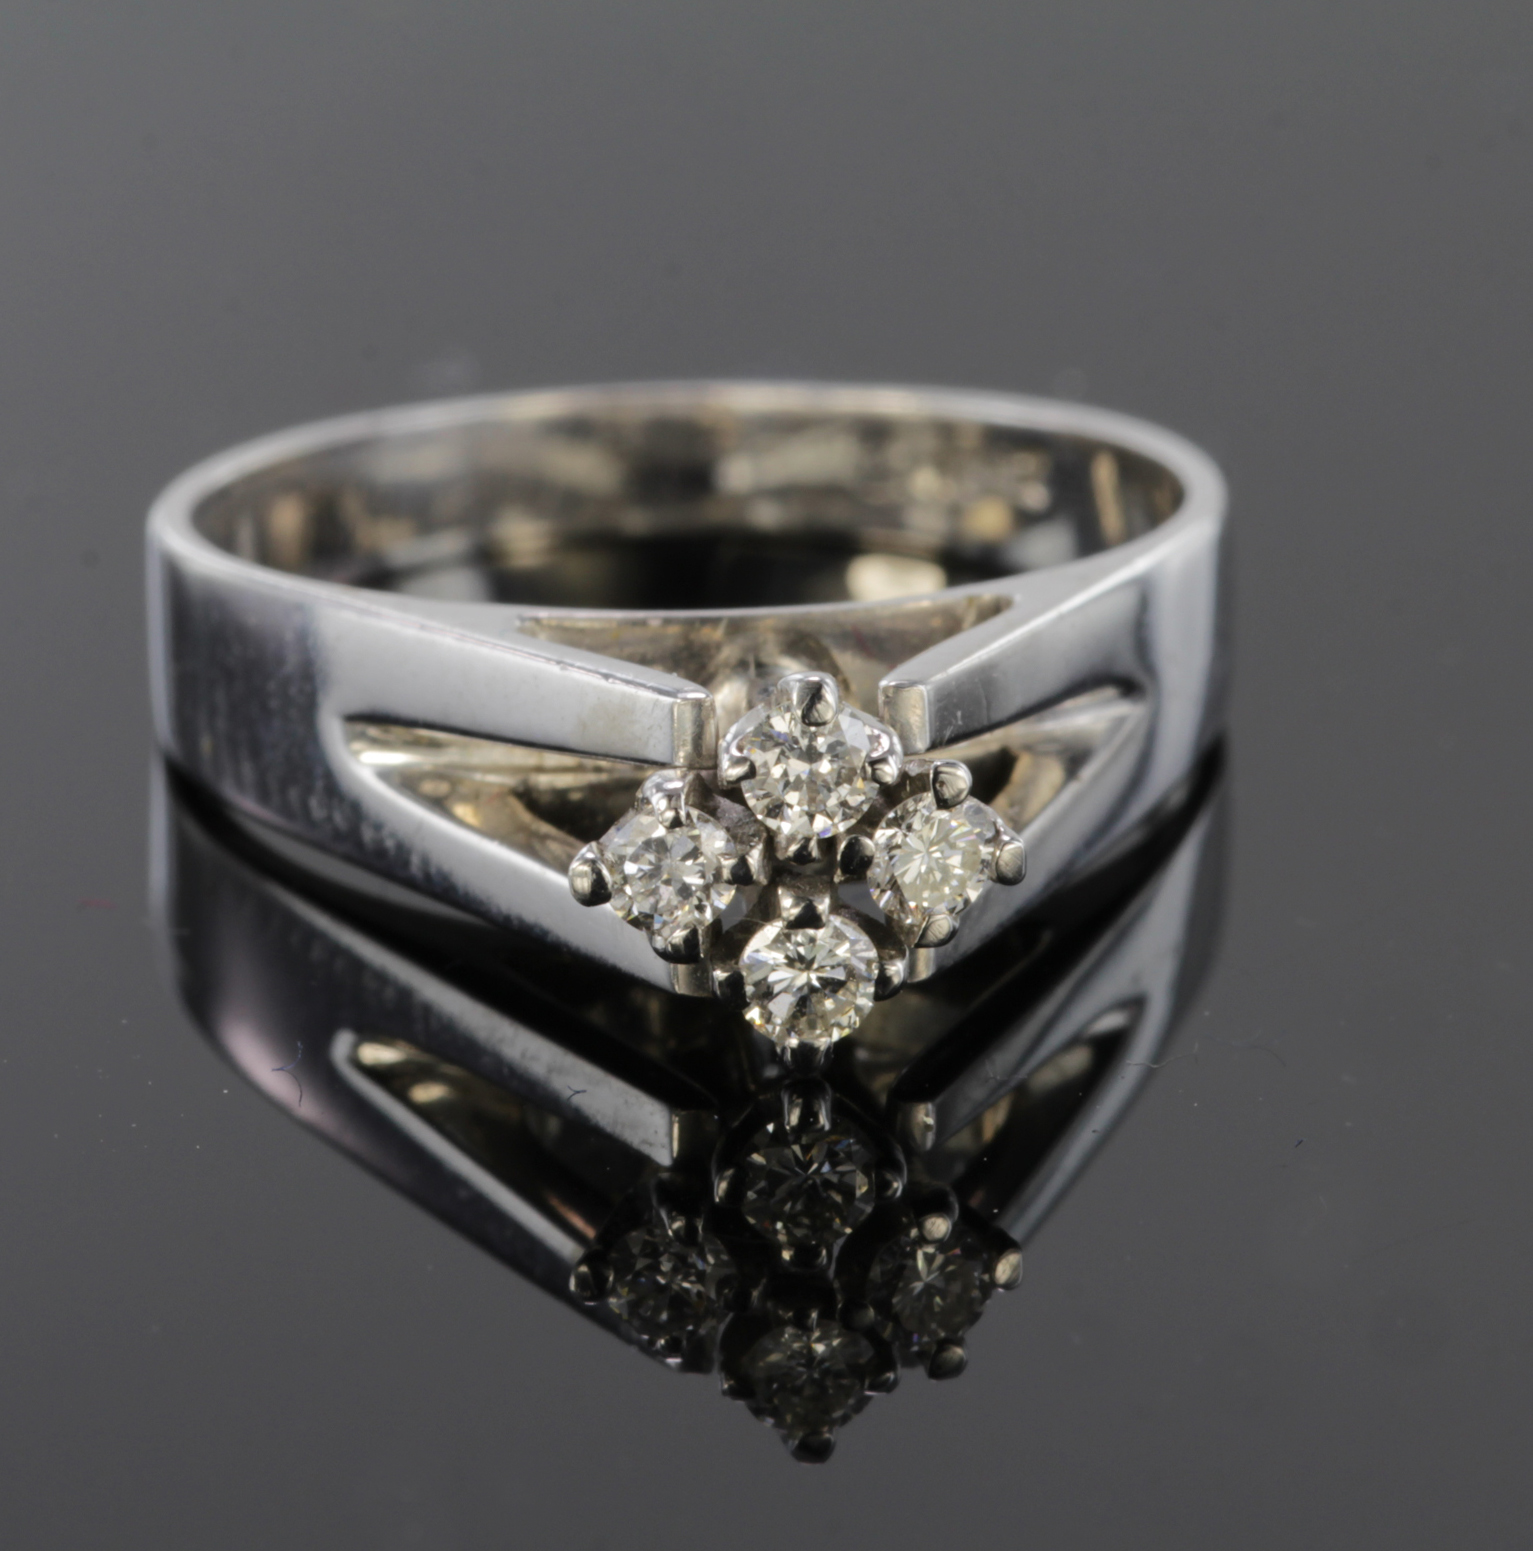 Lot 20 - 18ct White Gold four stone Diamond Ring size J weight 3.6g